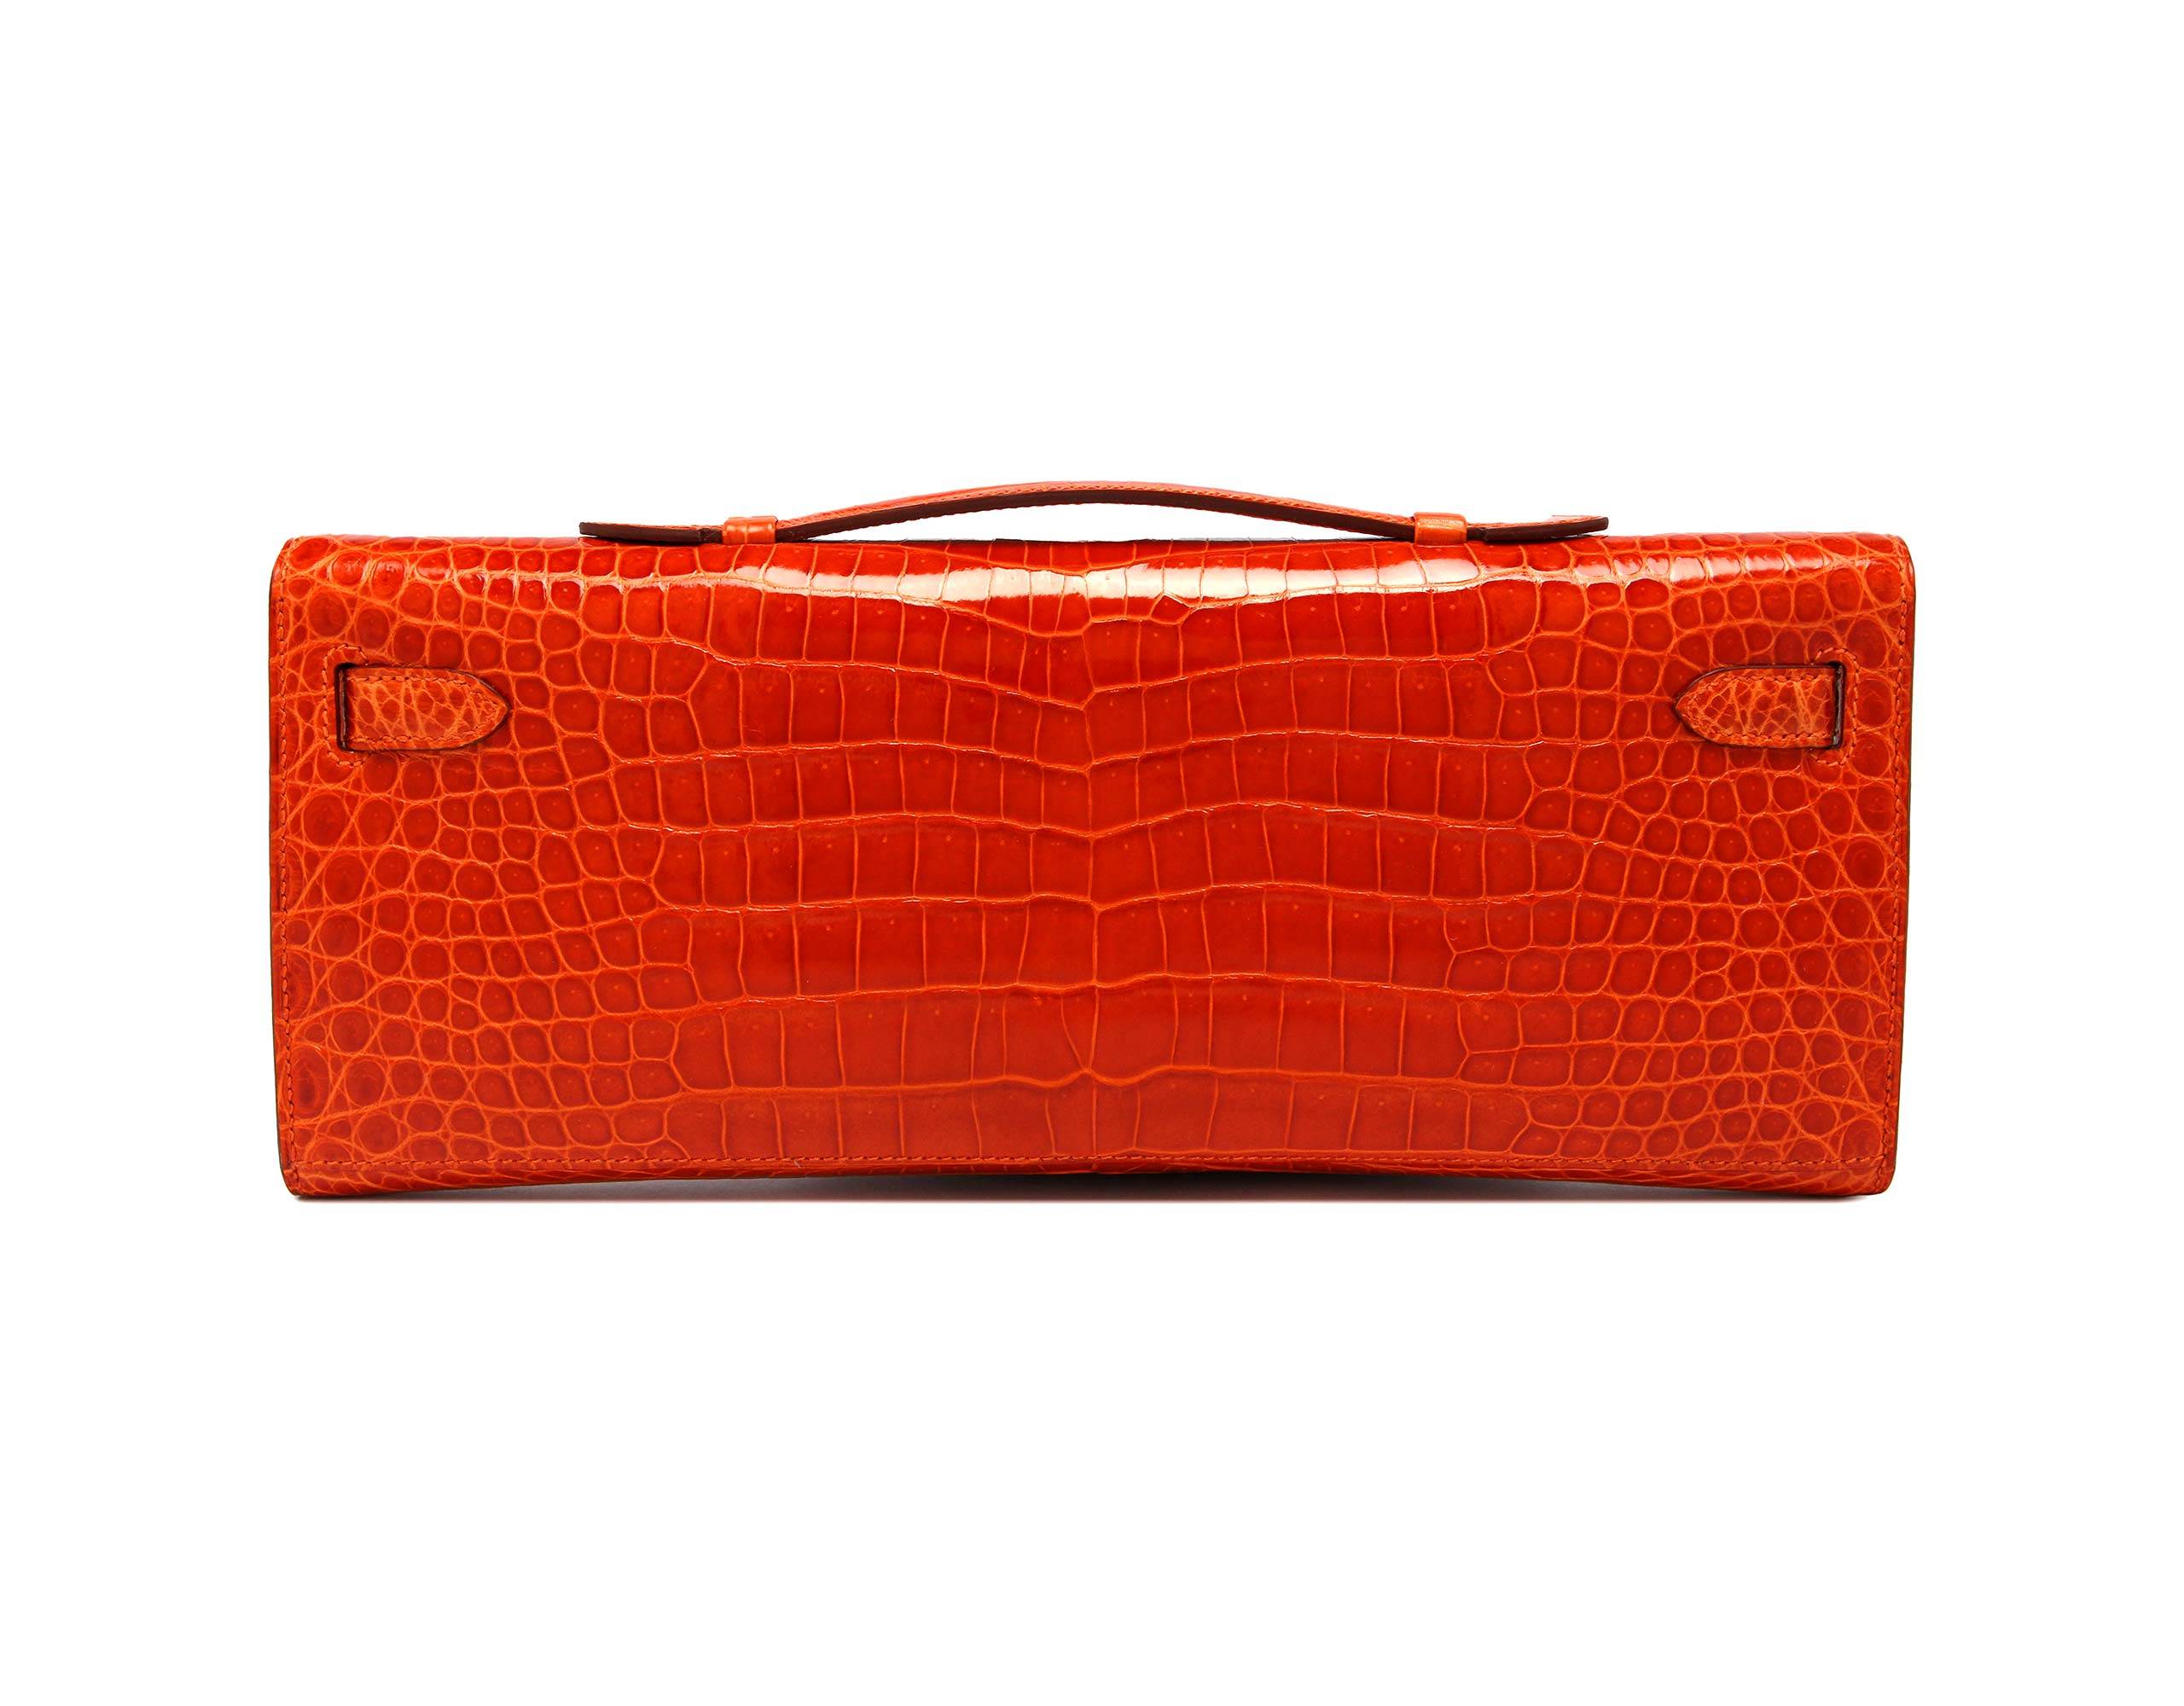 Kelly Cut Orange Shiny Porosus Croc with Palladium